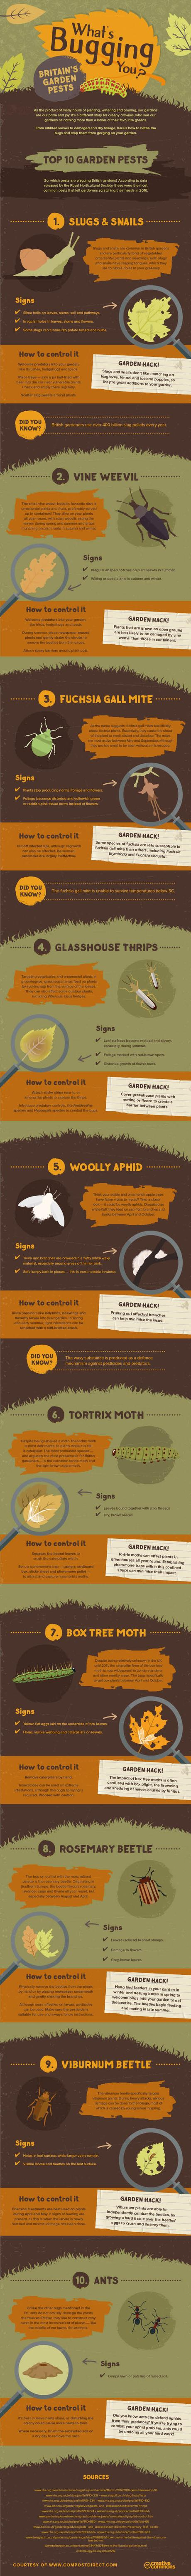 garden pests infographic